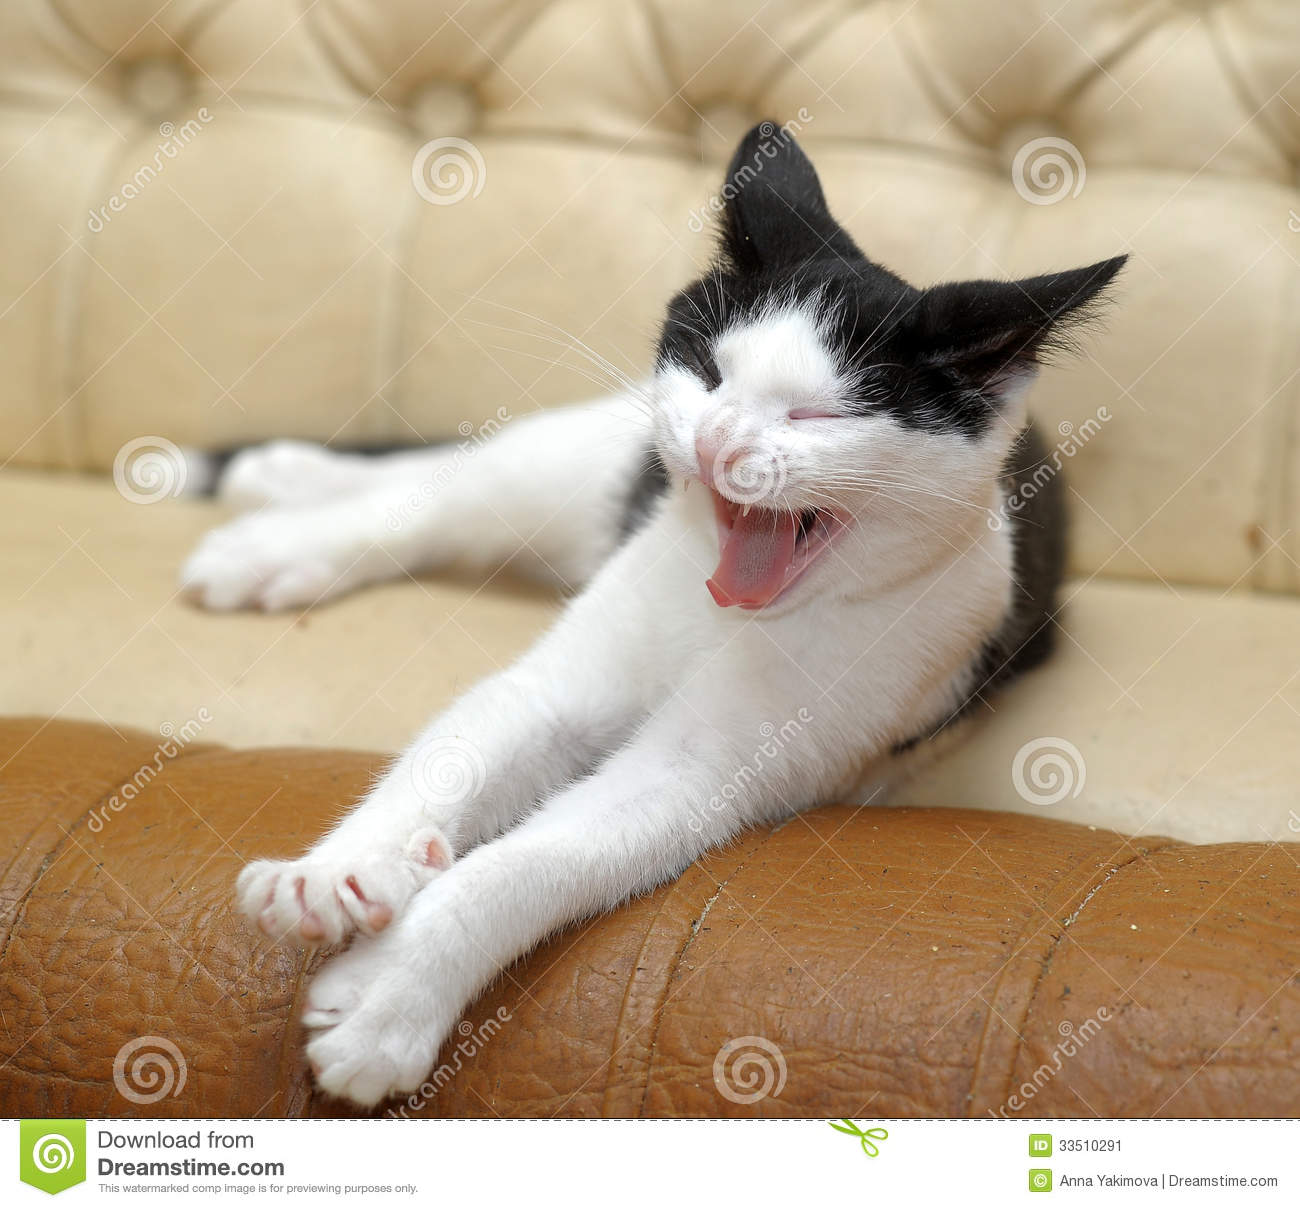 Black And White Cat Yawning Stock Image - Image: 33510291